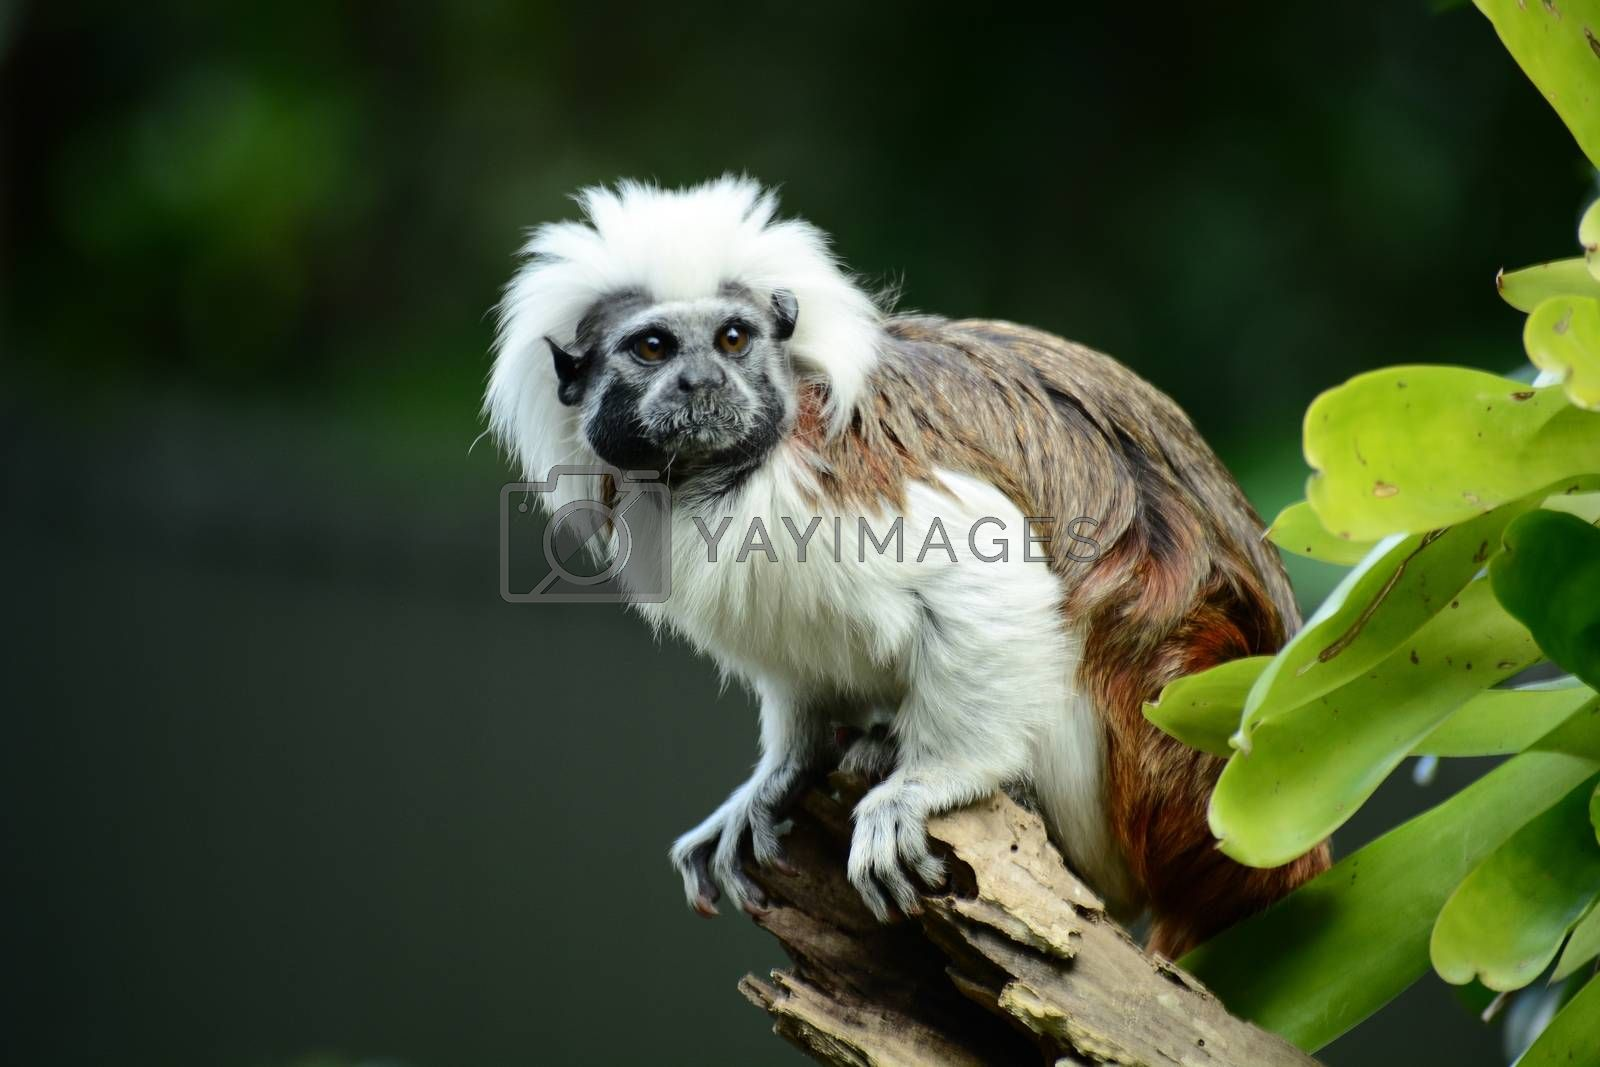 Cotton-top tamarins form monogamous relationships (only one partner) and are very territorial.